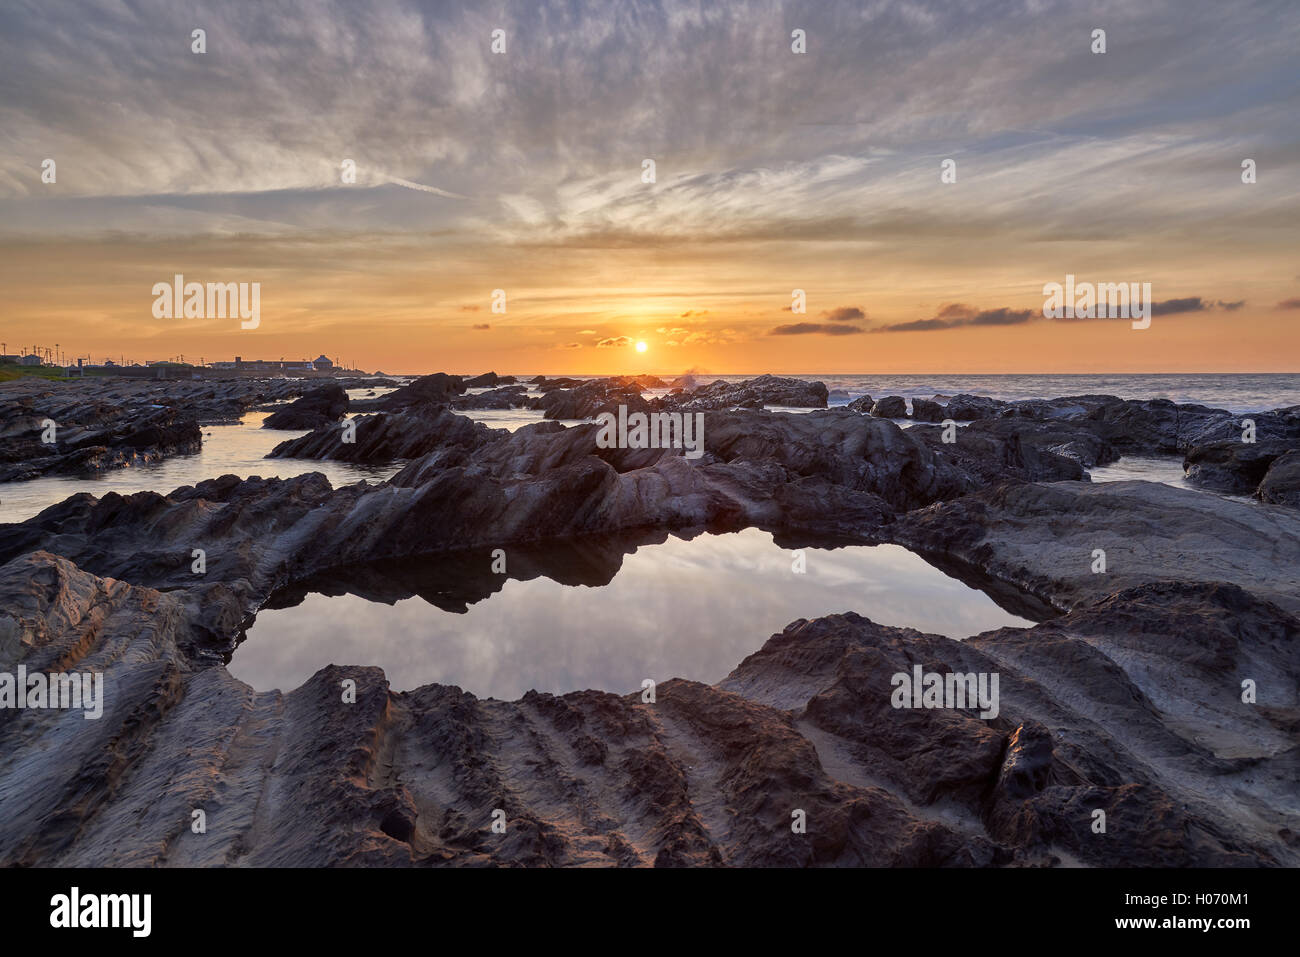 Sunrise light hitting sea rocks by the beach in the morning in Minamiboso, Chiba Prefecture, Japan - Stock Image